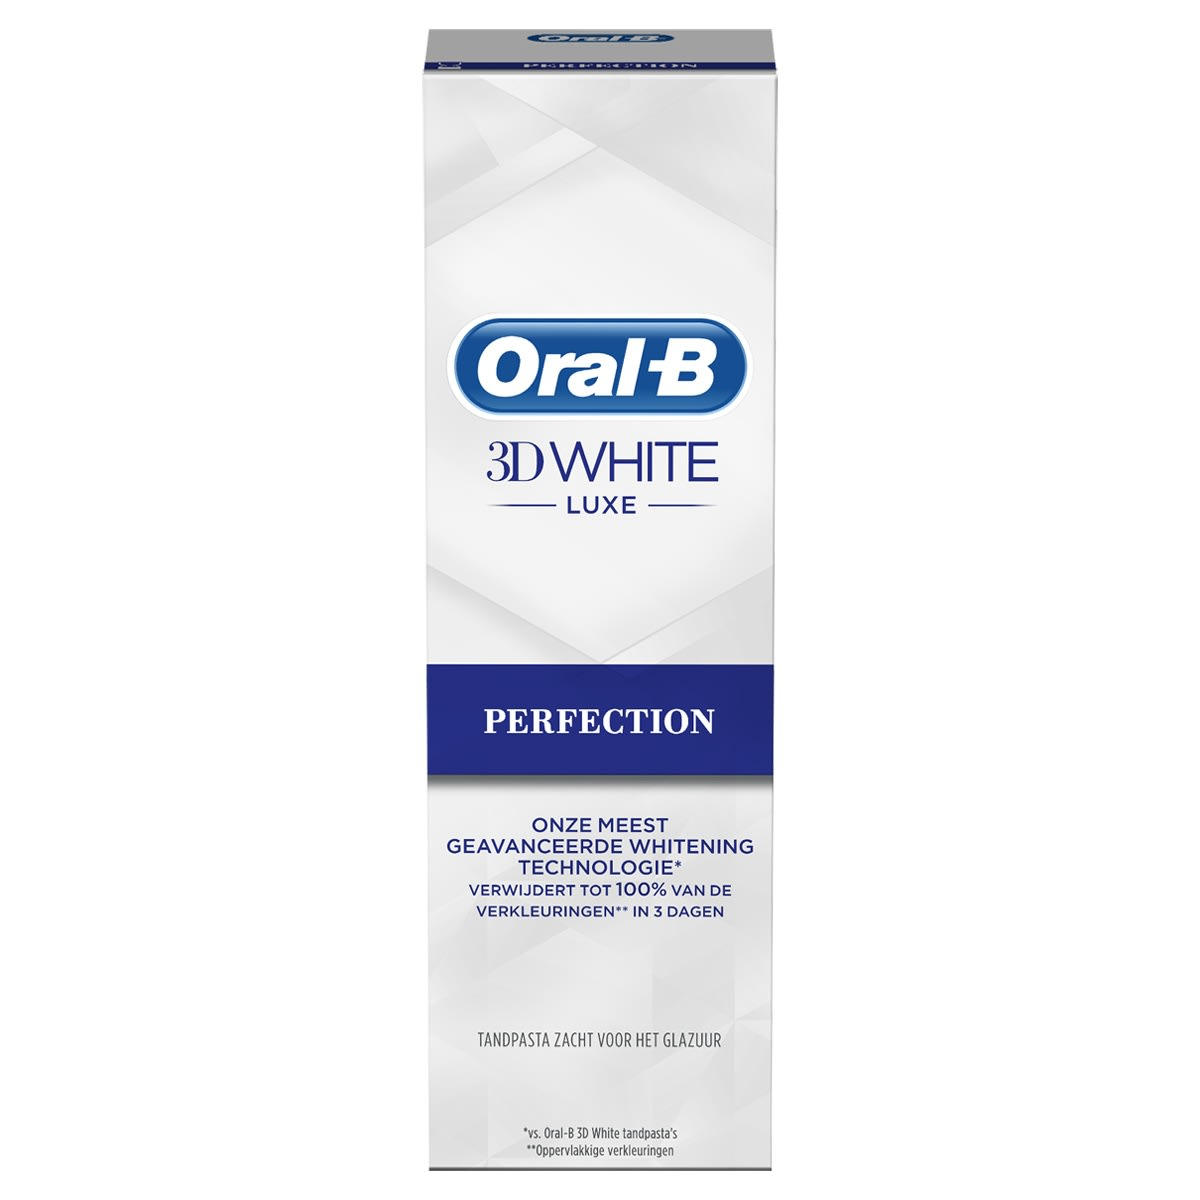 Oral-B 3D White Luxe Perfection Tandpasta 75ml